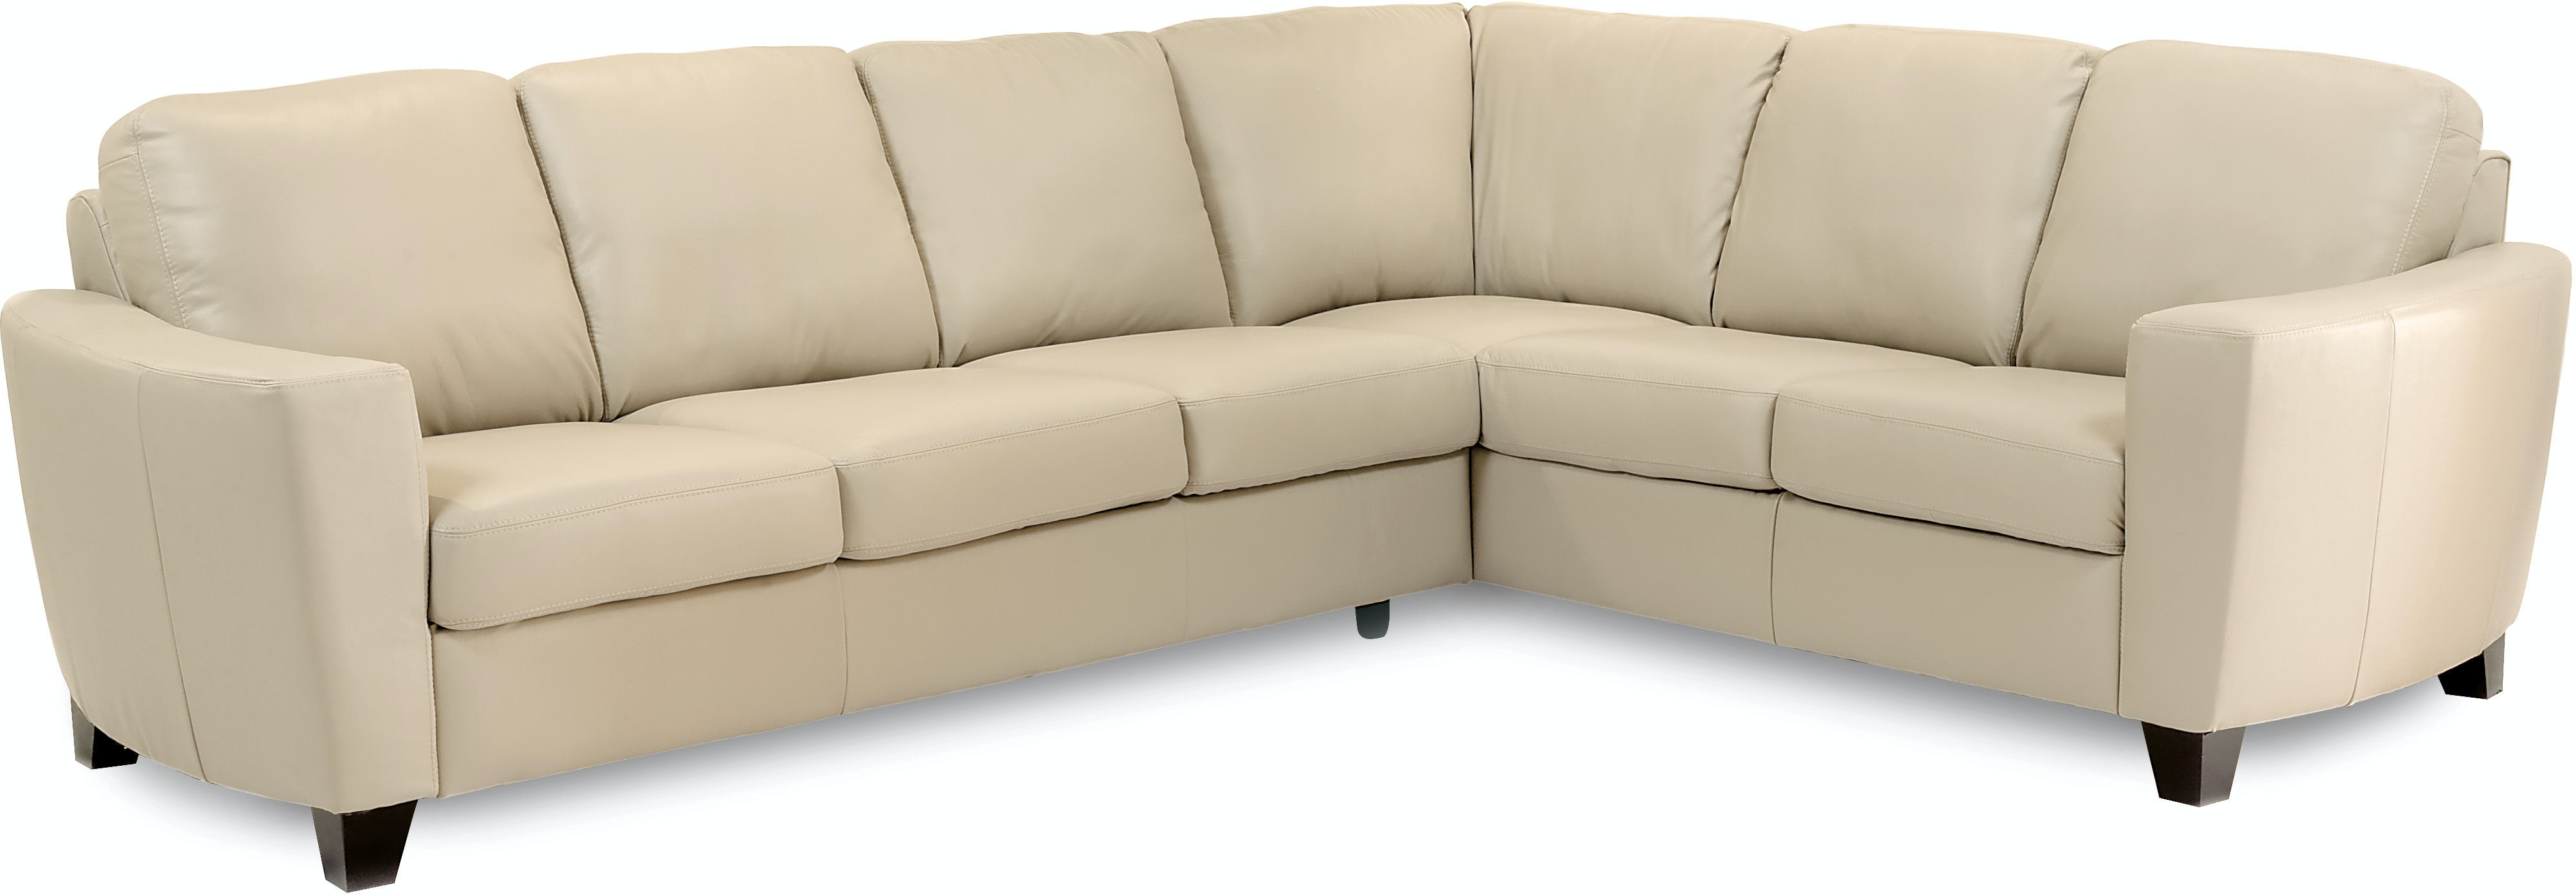 living room sectionals the sofa store towson glen burnie and